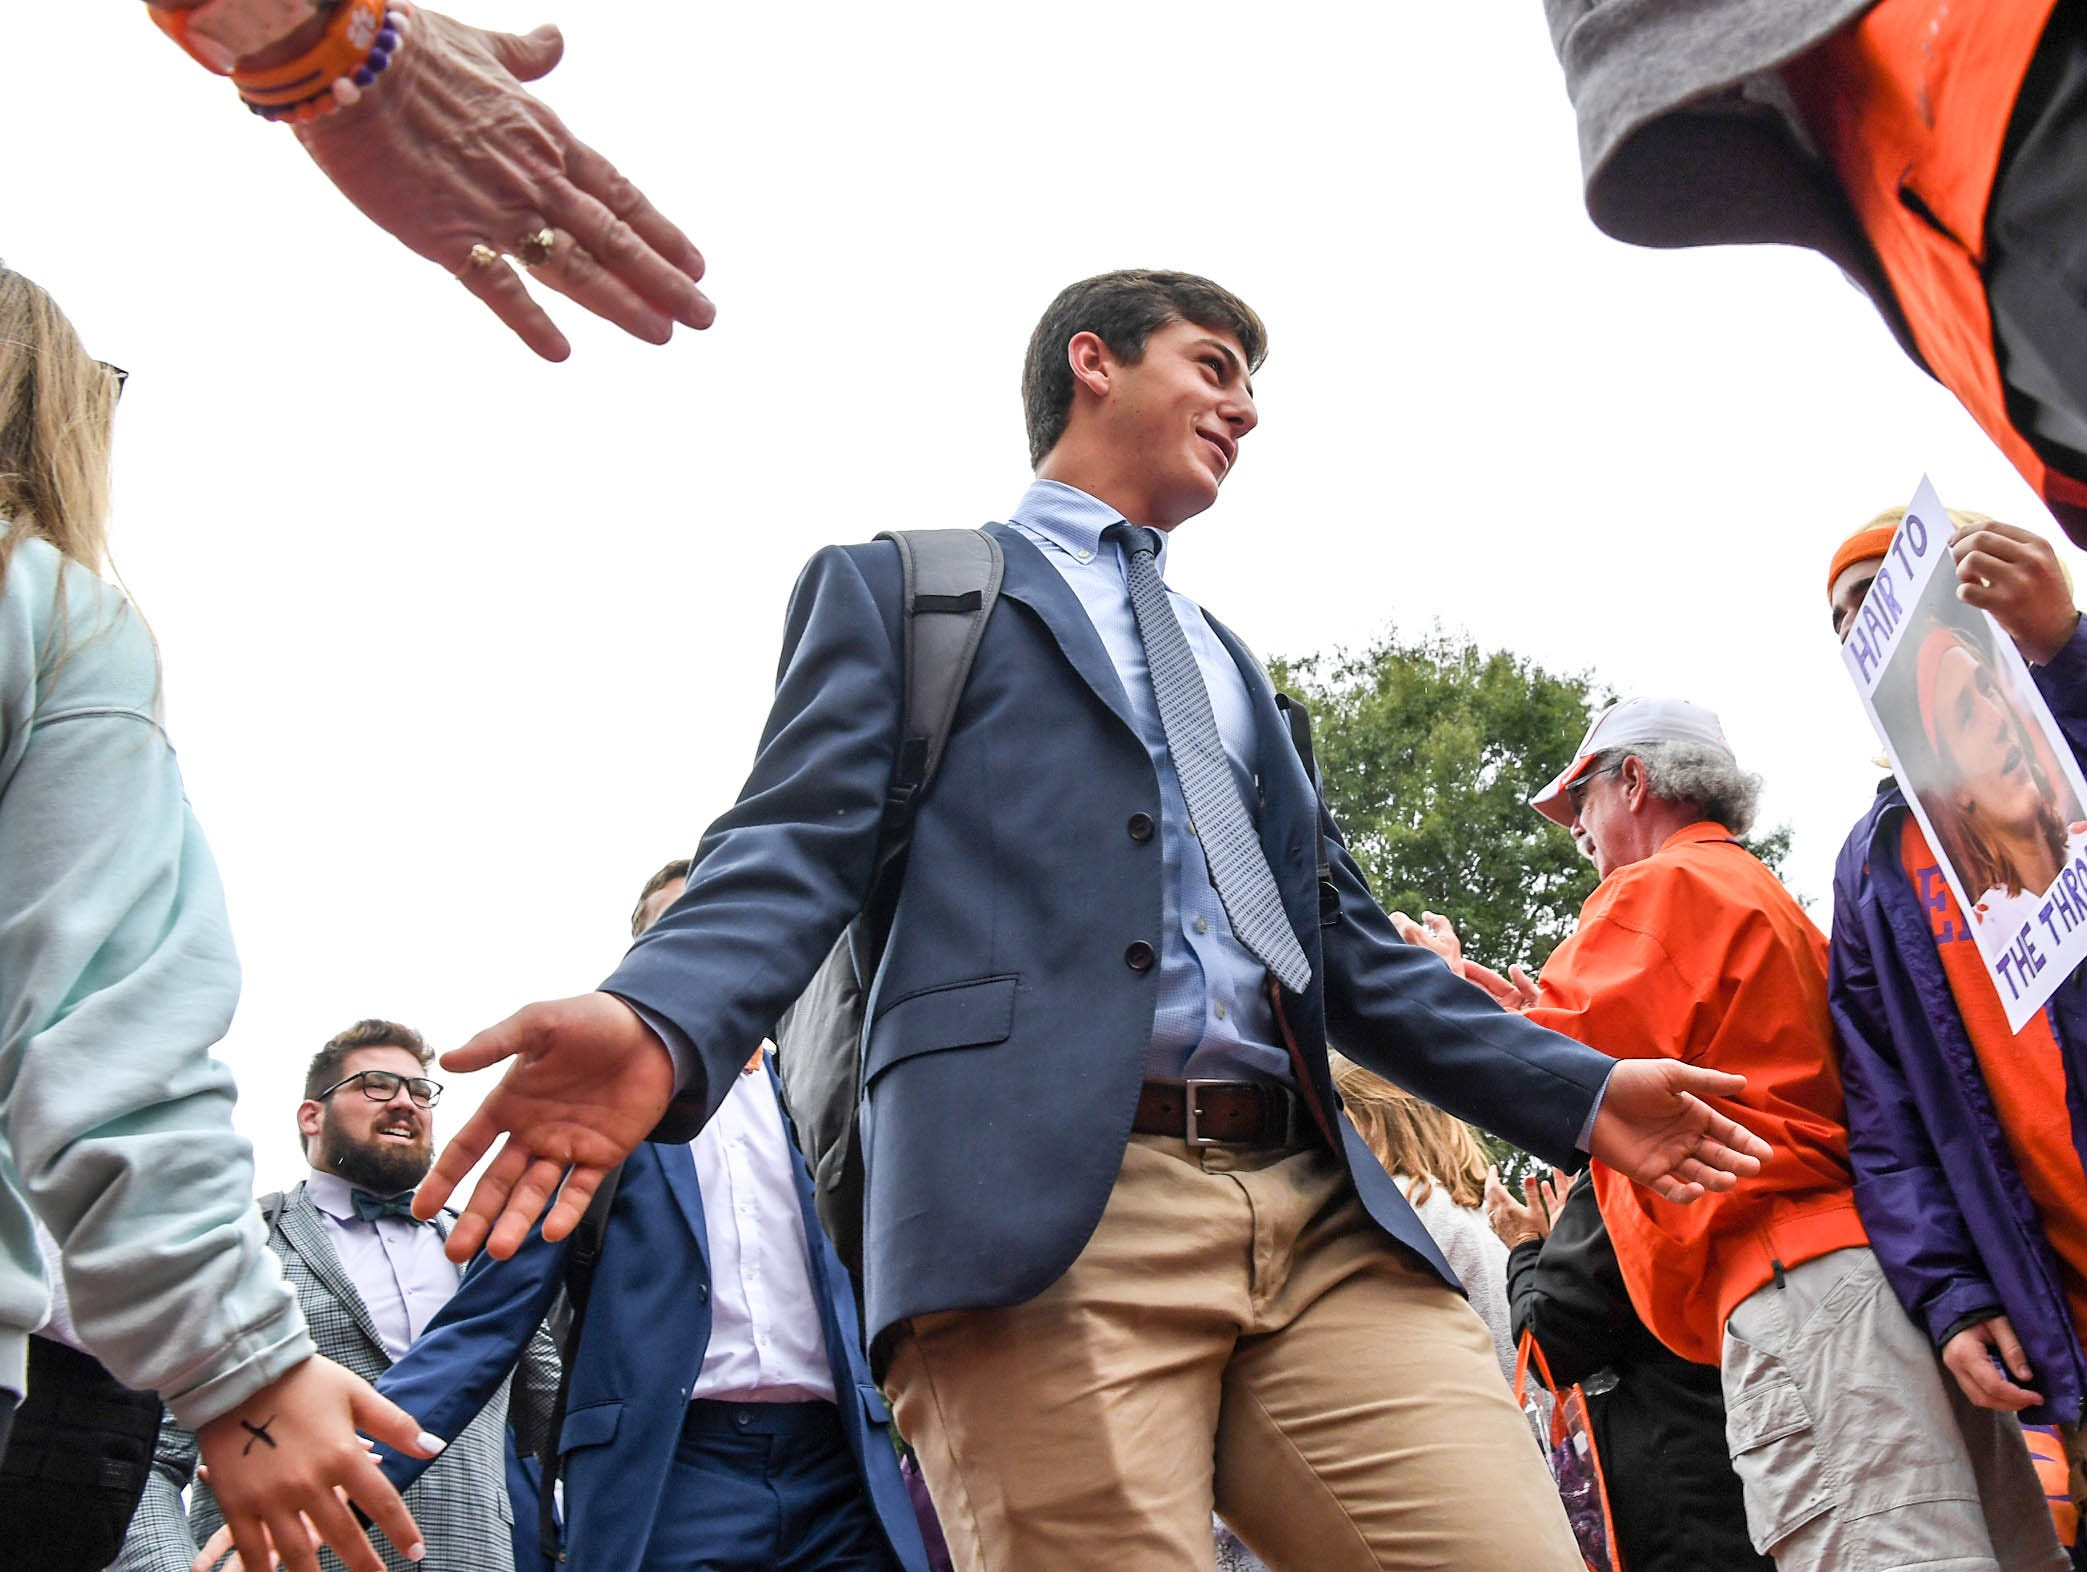 Clemson wide receiver Drew Swinney (81) walks by fans during Tiger Walk before the game in Memorial Stadium on Saturday, October 20, 2018.